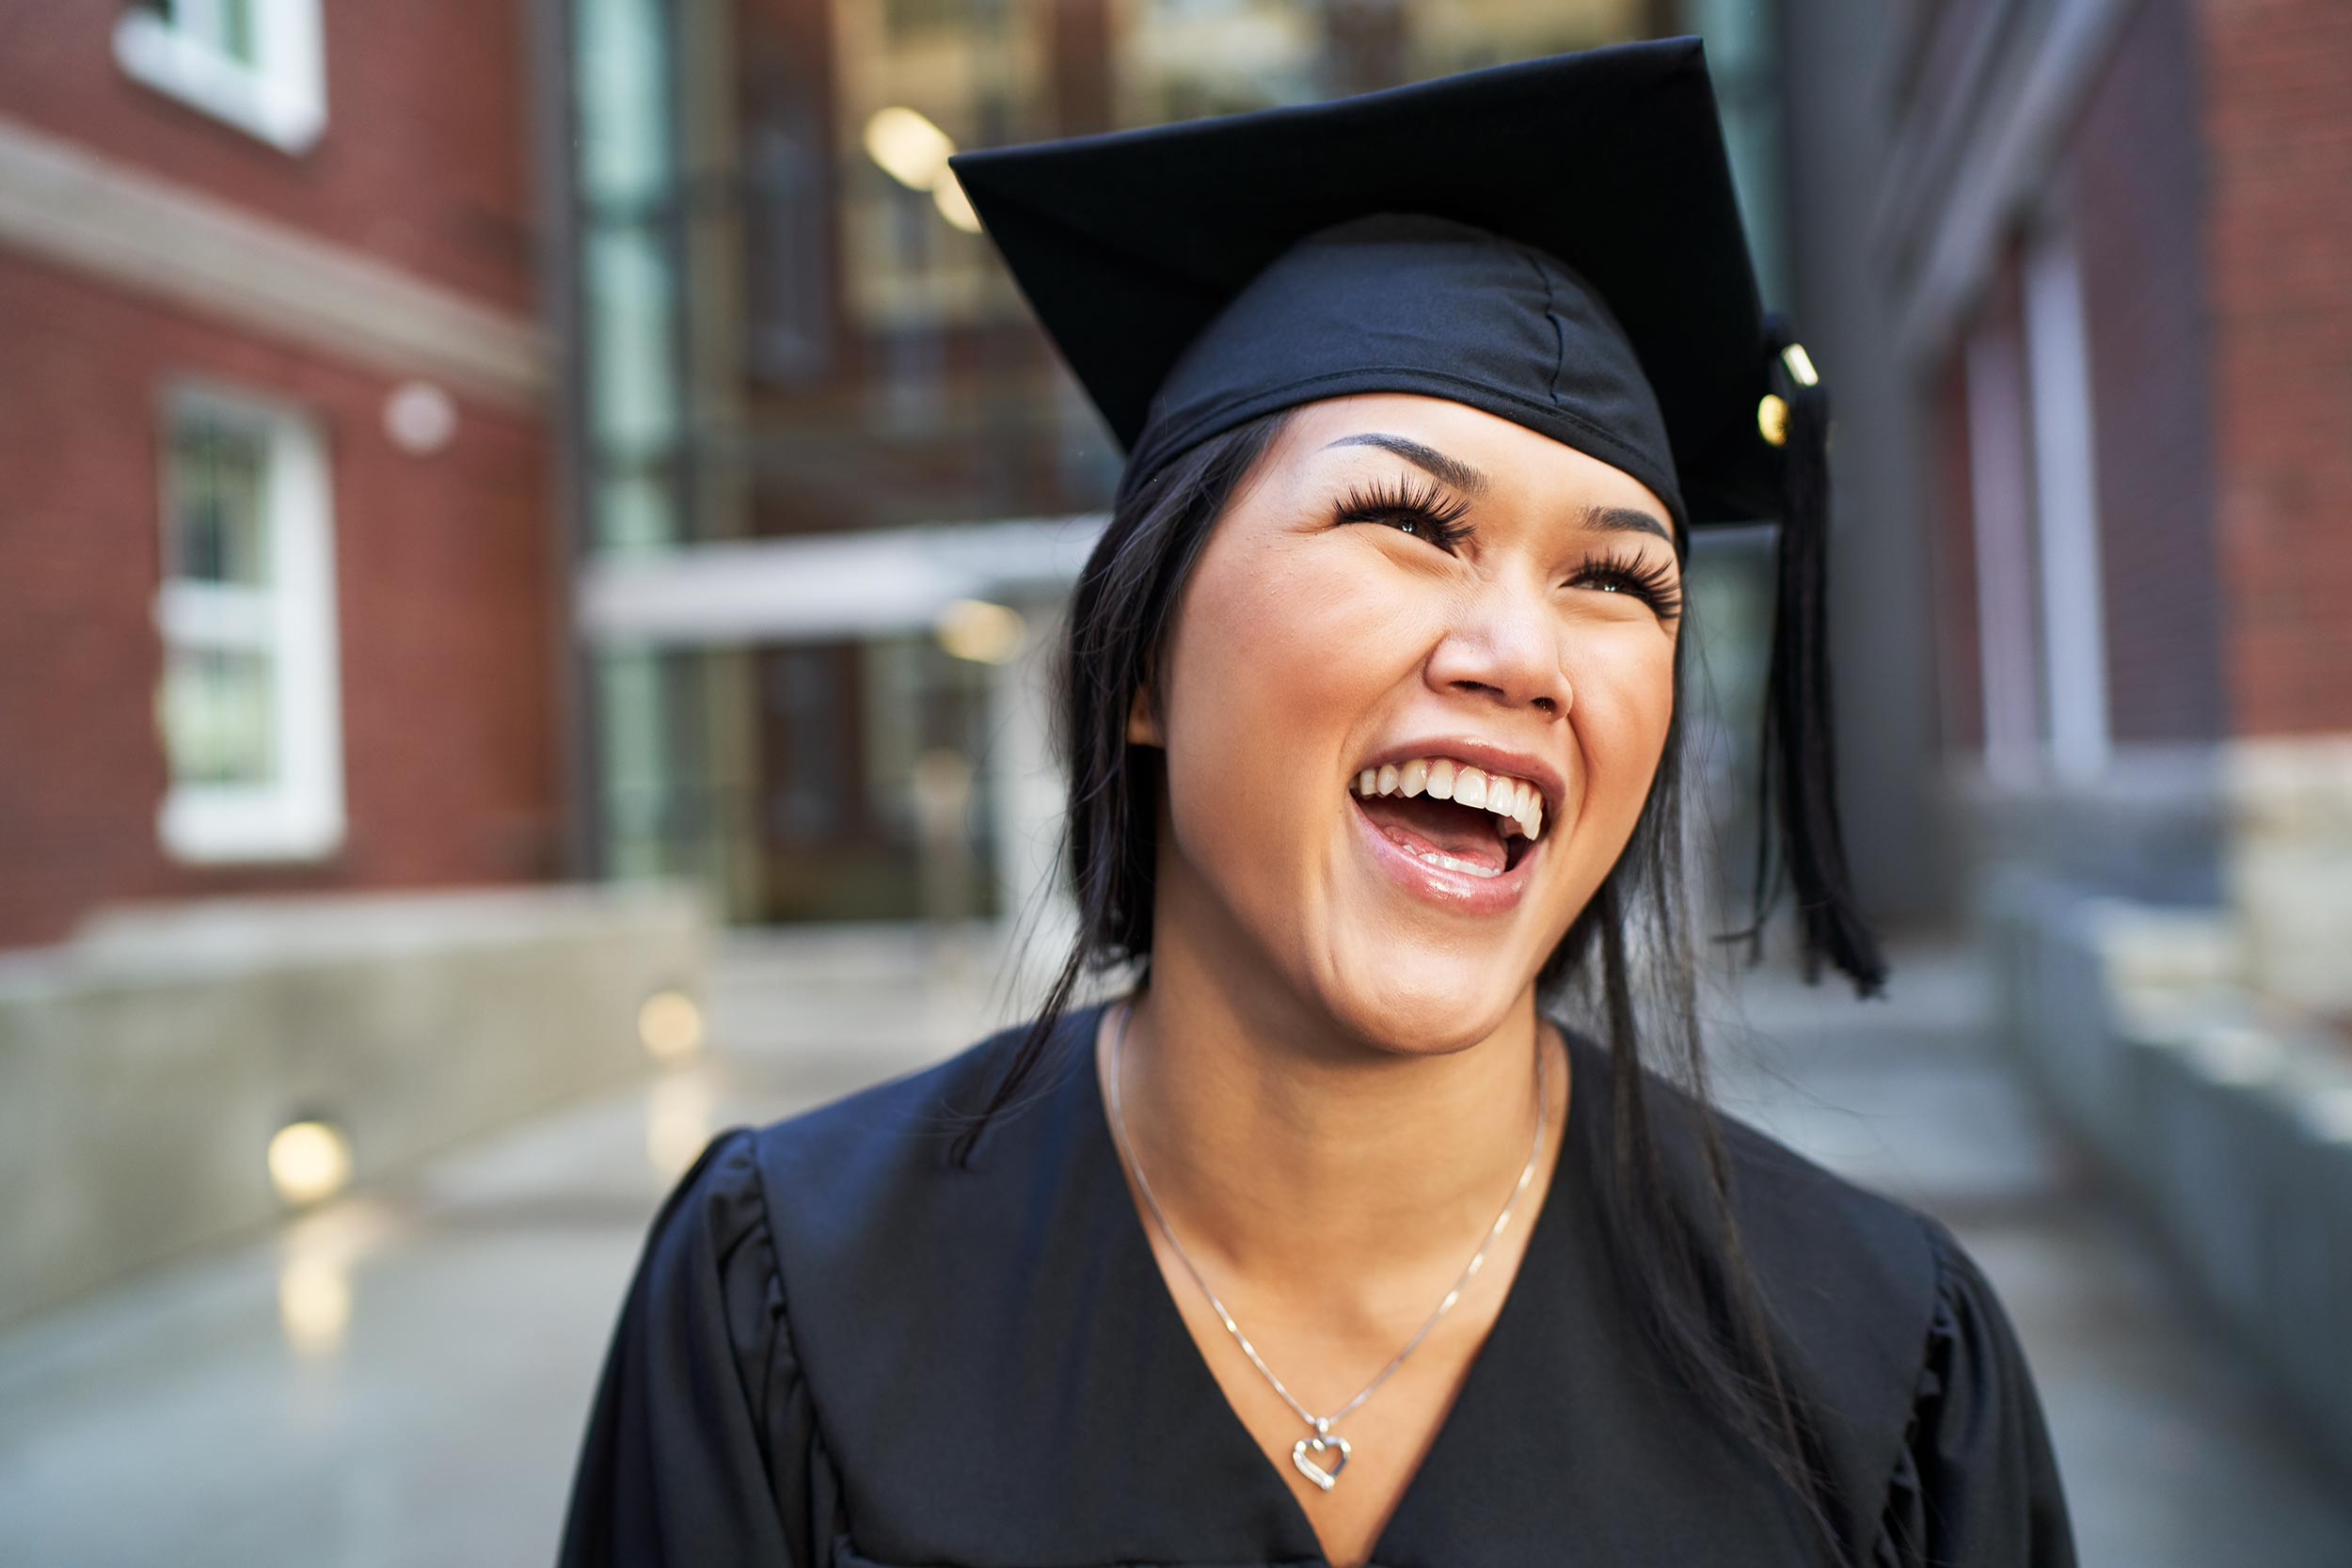 BECU_School_Graduate_8391-laugh